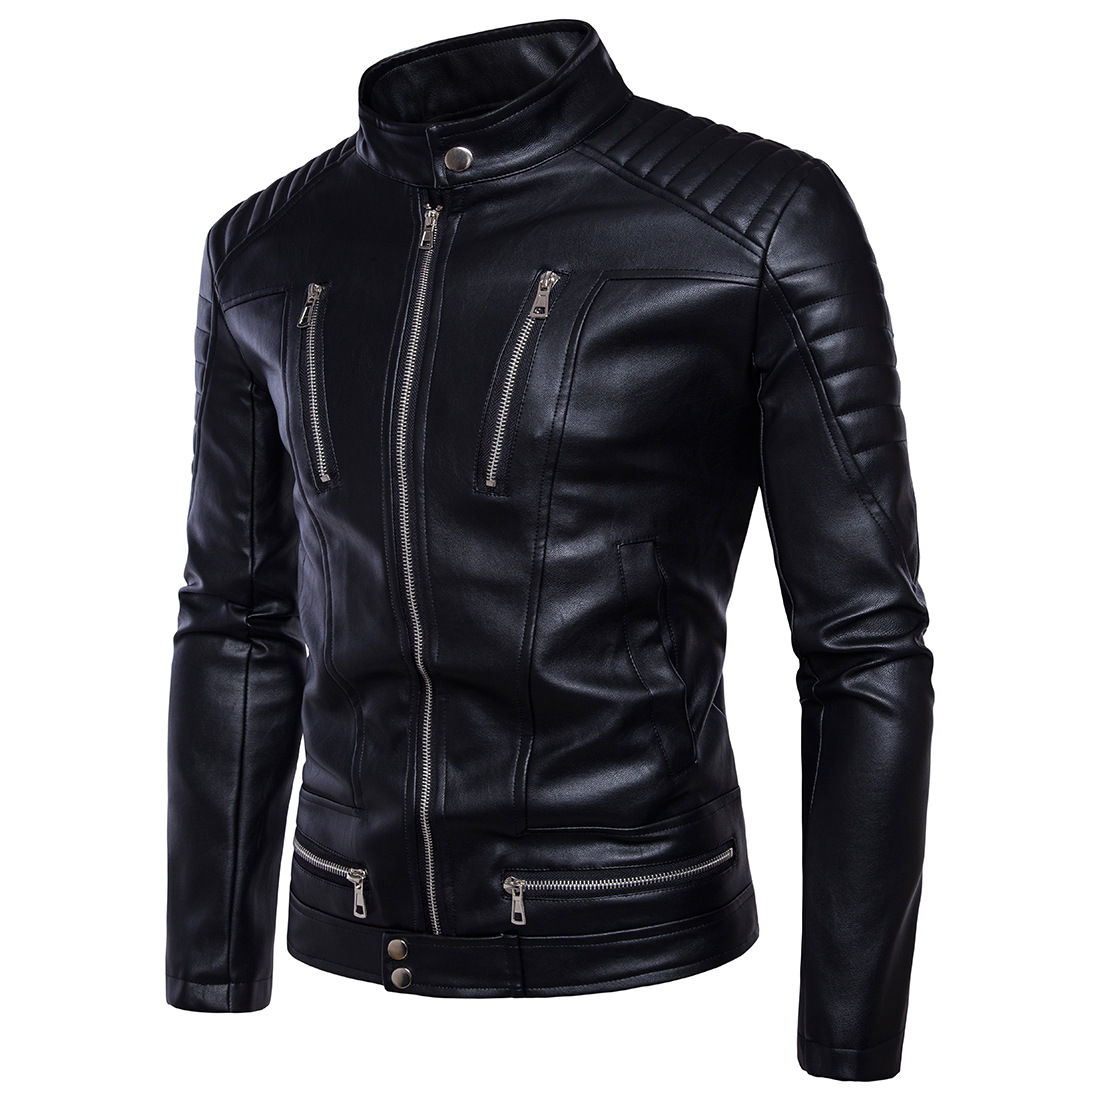 [Code] European Export Outside China Punk Men'S Wear Locomotive Multi-Zipper Leather Coat Motorcycle Leather Jacket Goods Foot B